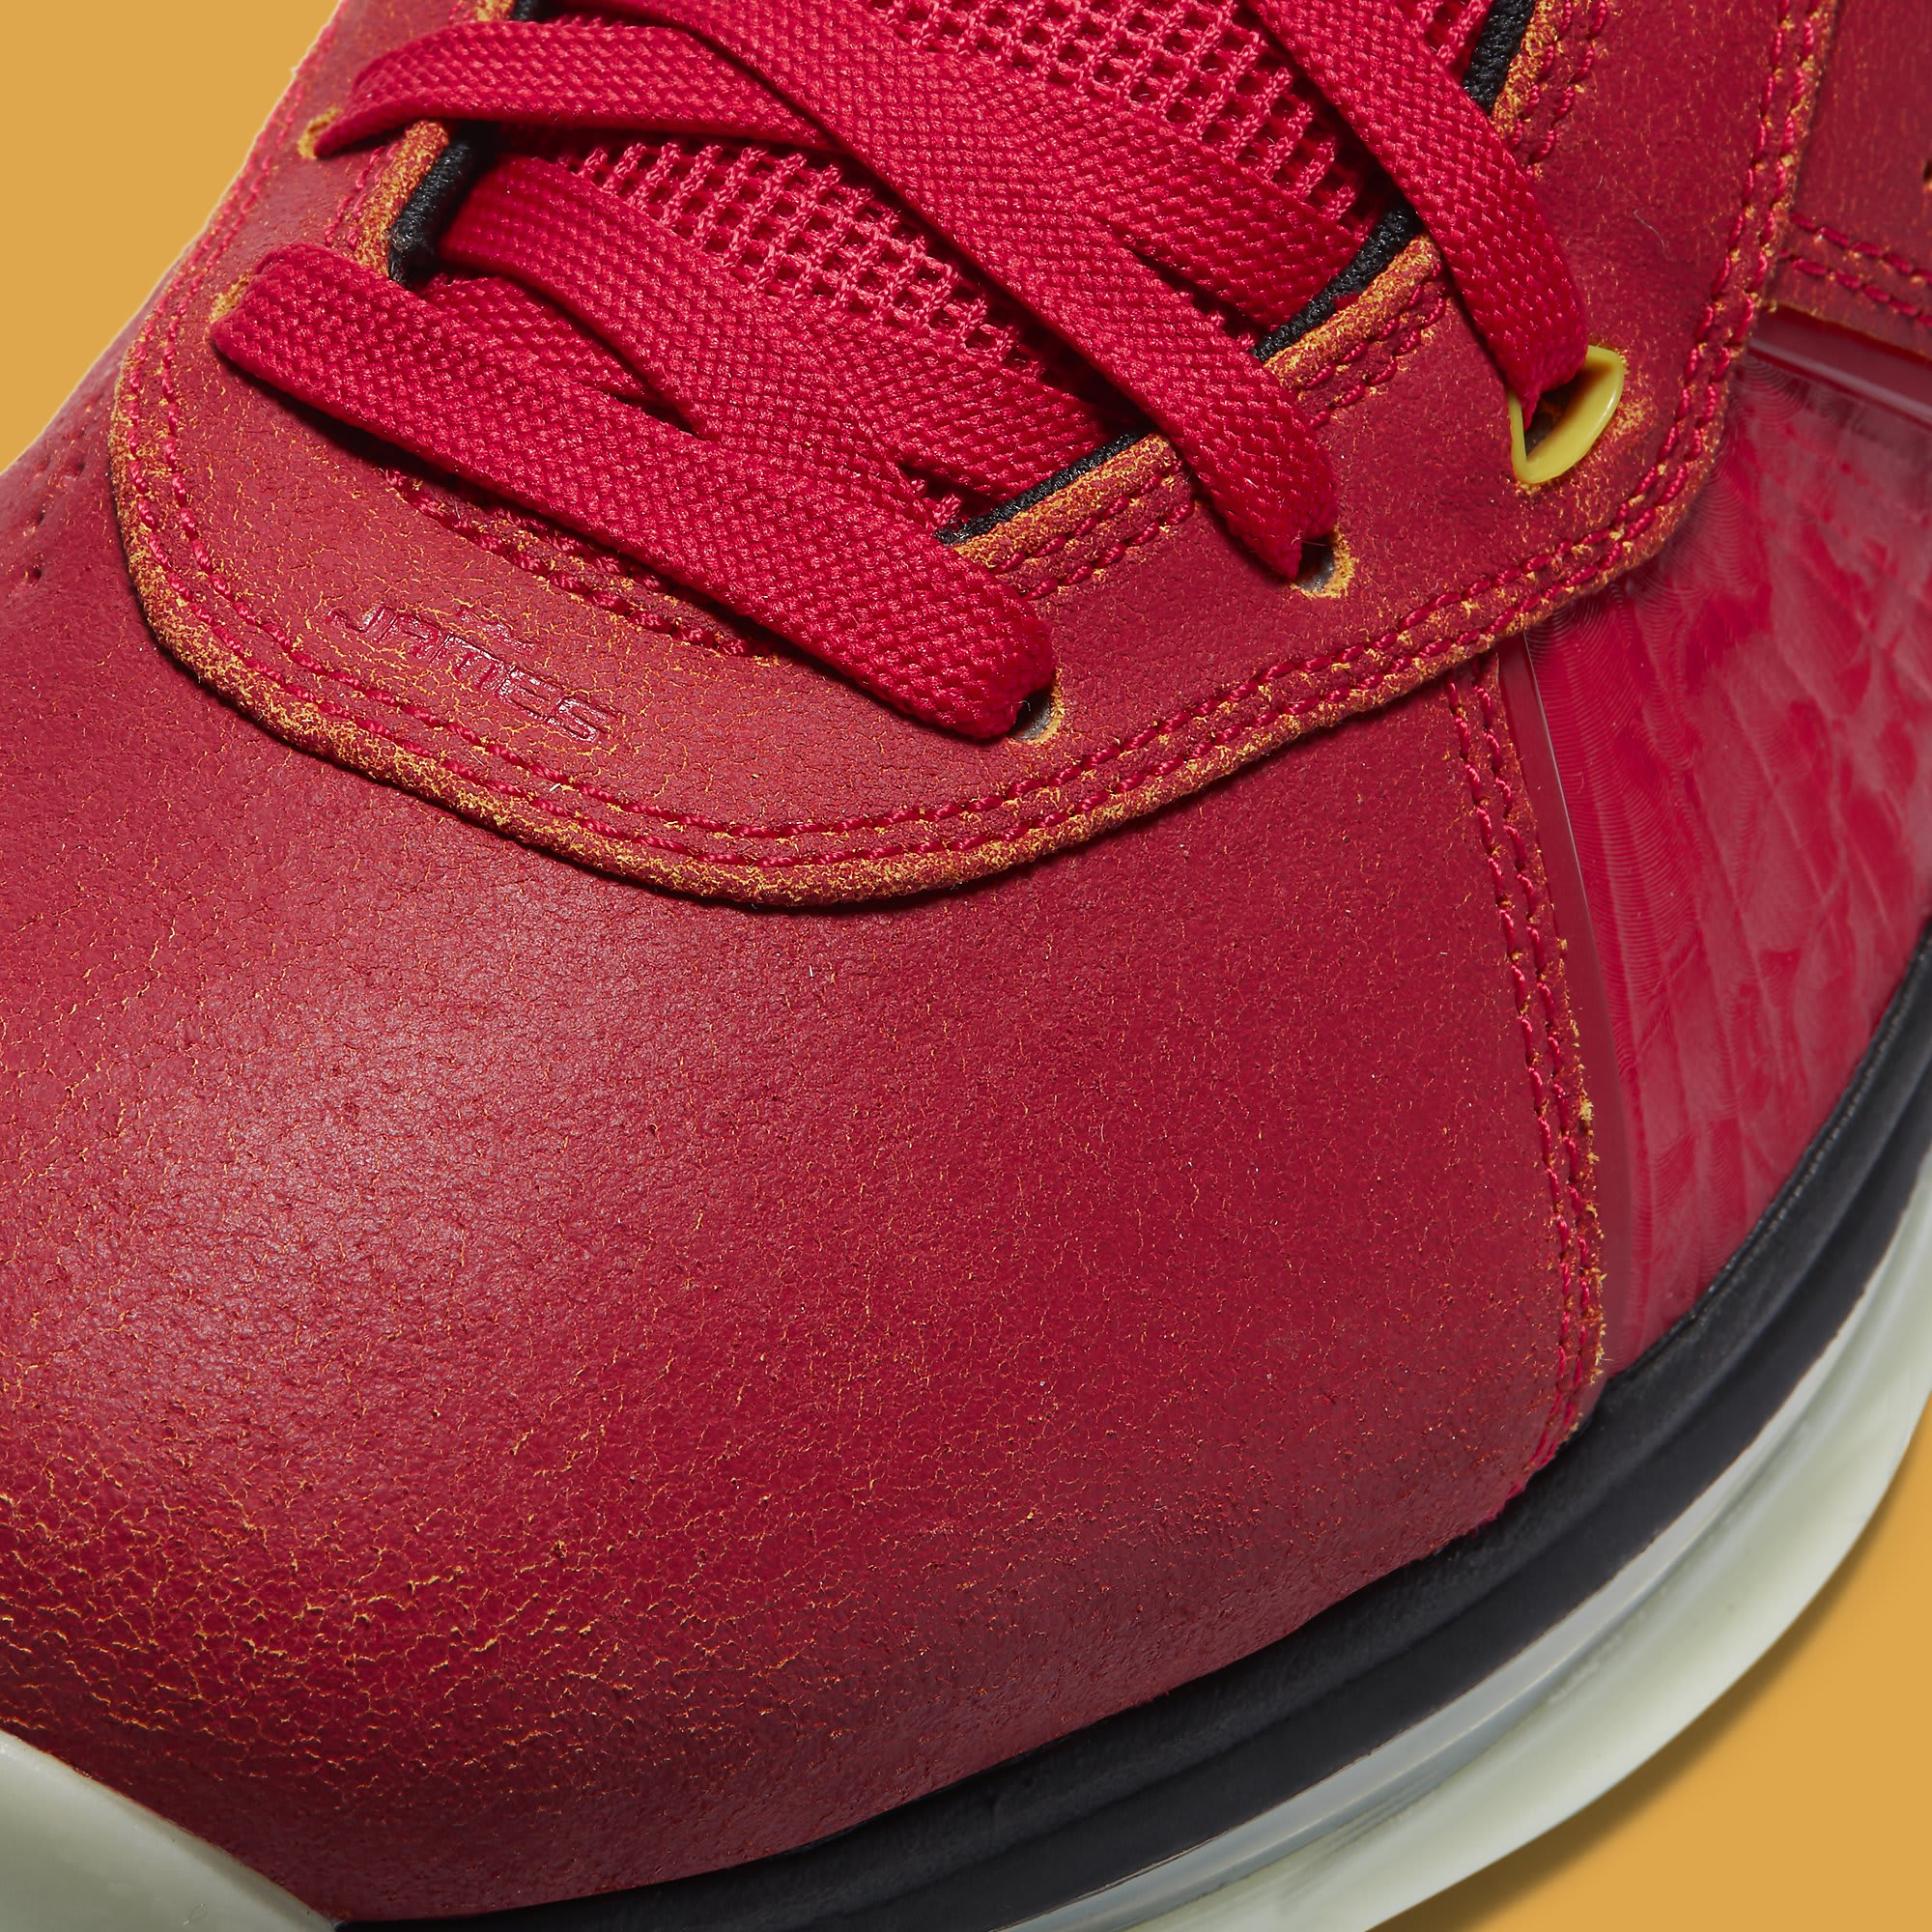 Nike LeBron 8 QS 'Gym Red' CT5330-600 Toe